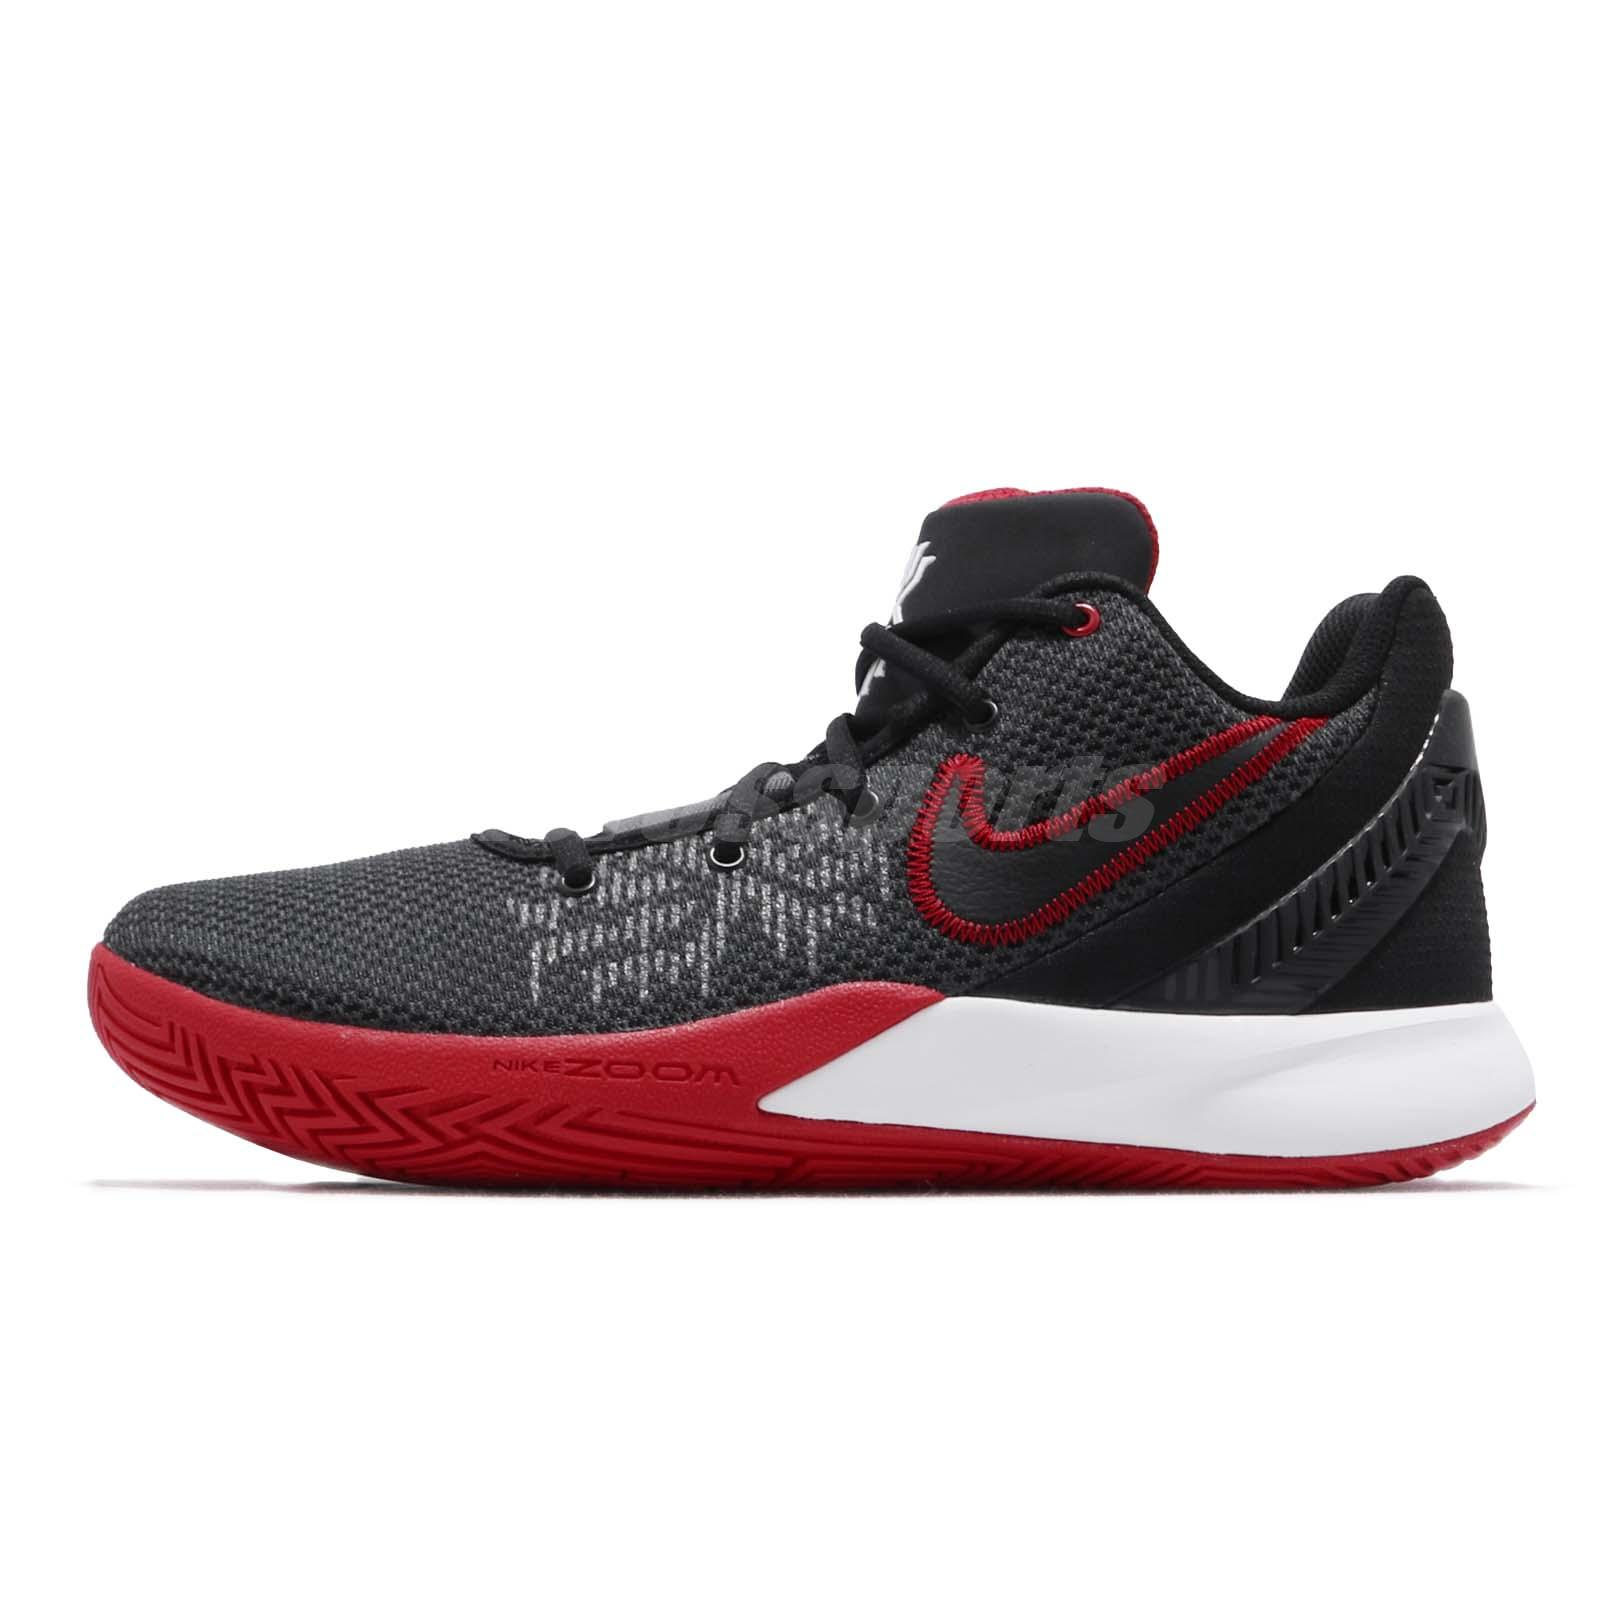 Nike Kyrie Flytrap II EP Irving 2 Black Red Bred Mens Basketball Shoe  AO4438-016 9f5900eac